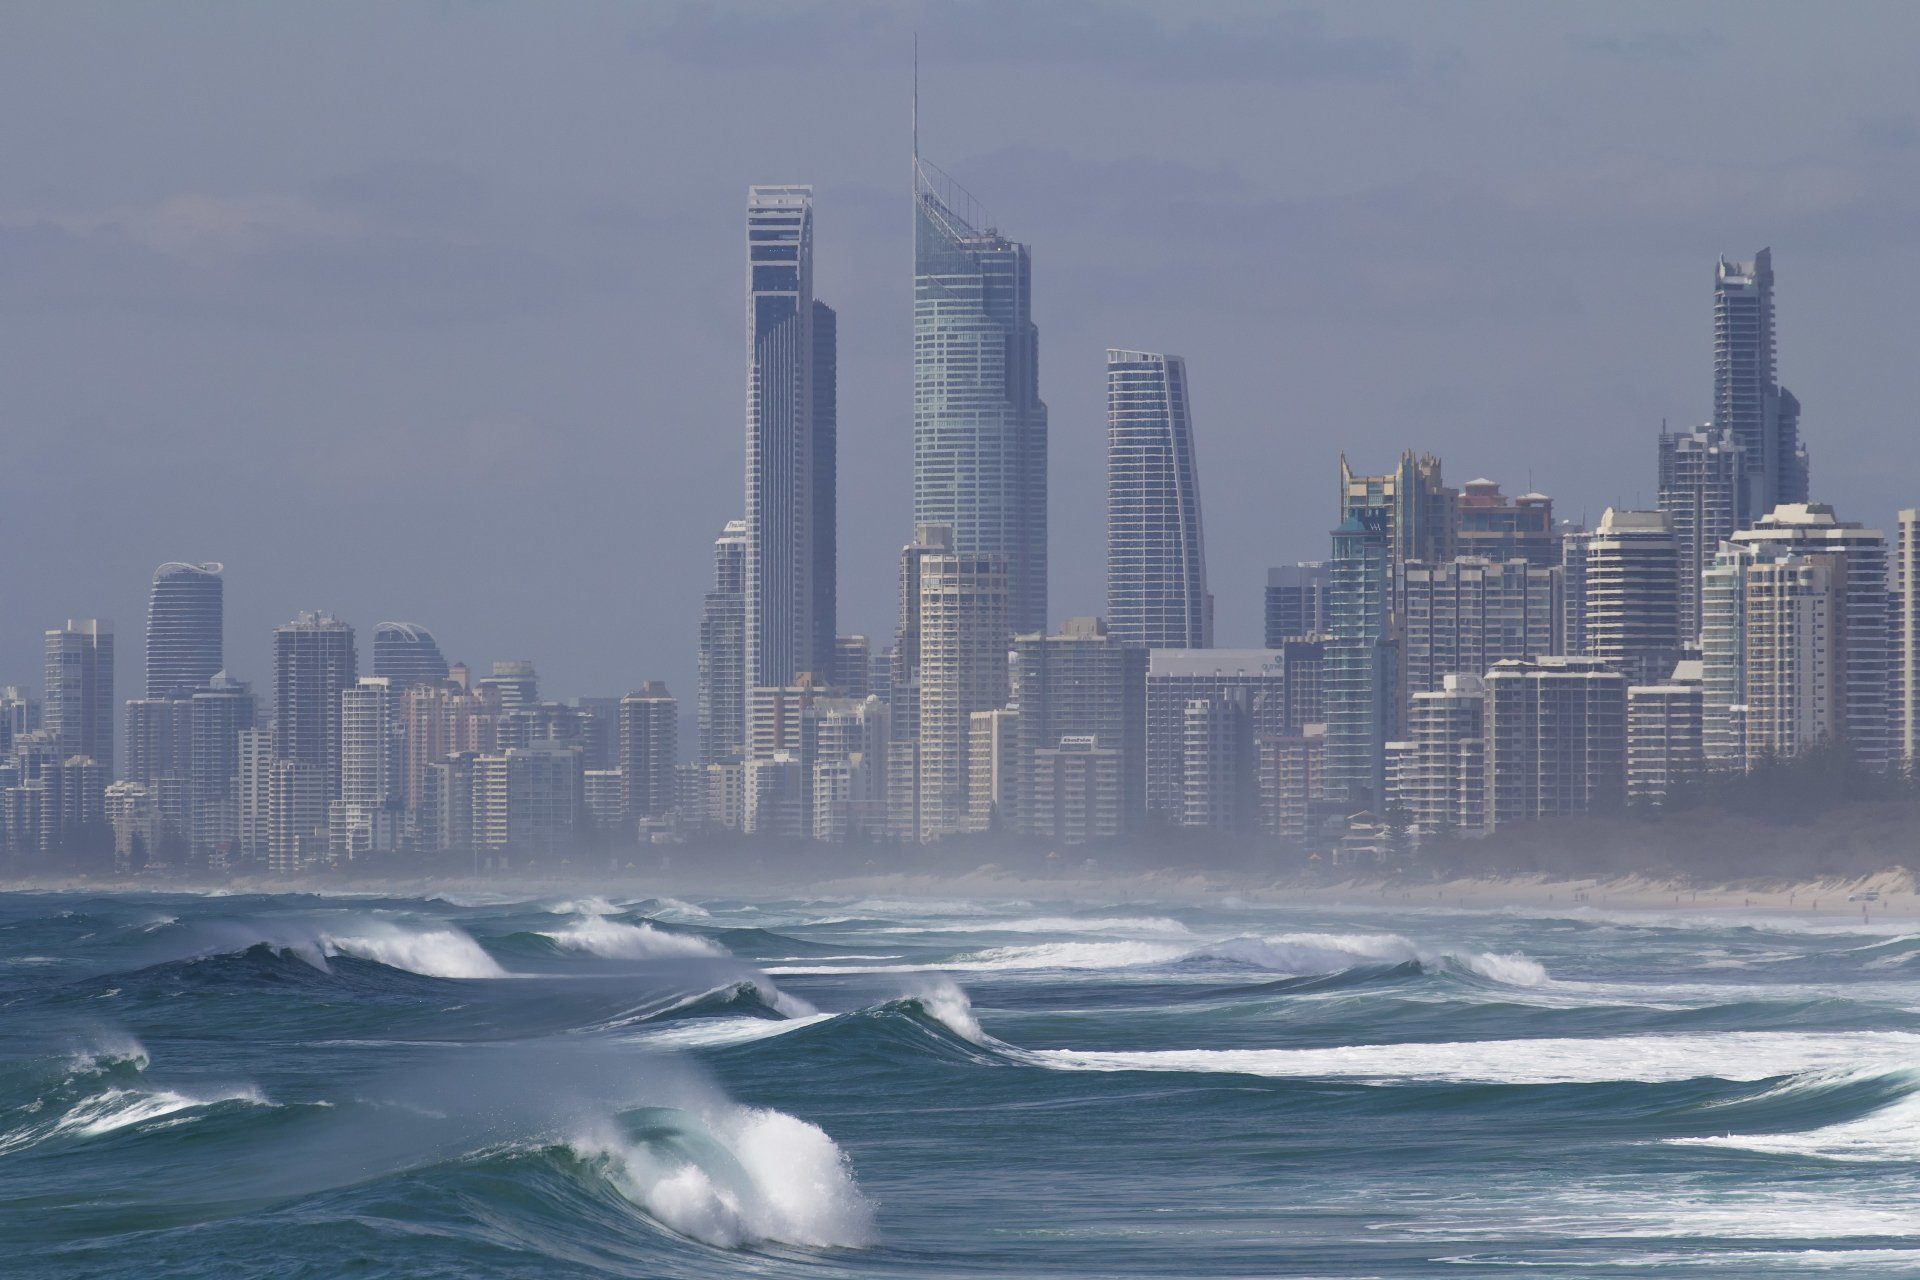 Man Made - Gold Coast  Coastline Beach Australia Queensland Sea Wave Wallpaper